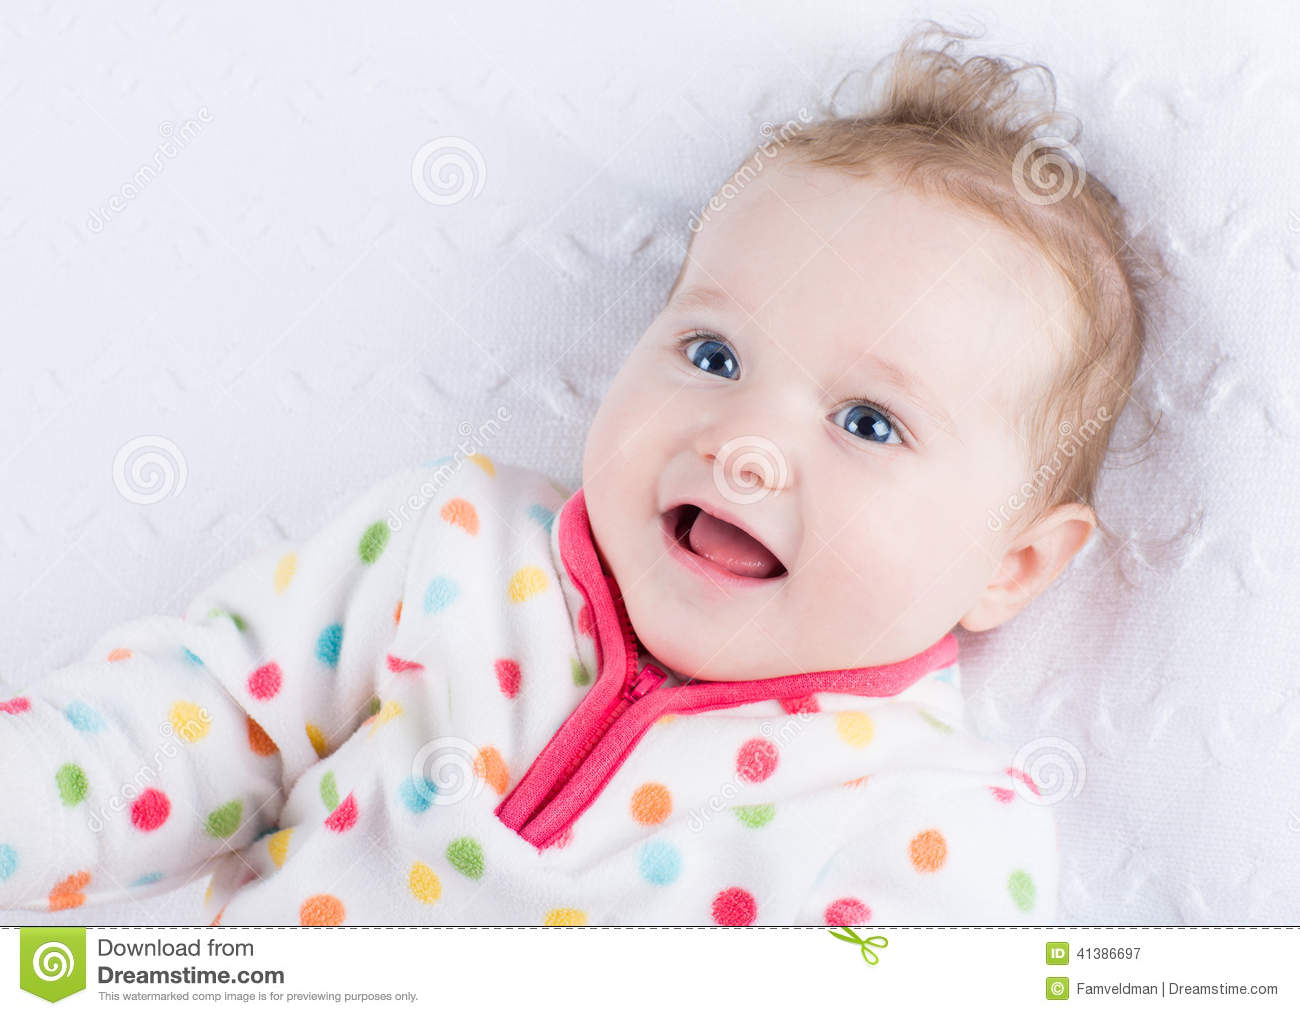 e58899ed8 Cute Smiling Baby Girl Wearing A Warm Winter Jacket Stock Image ...